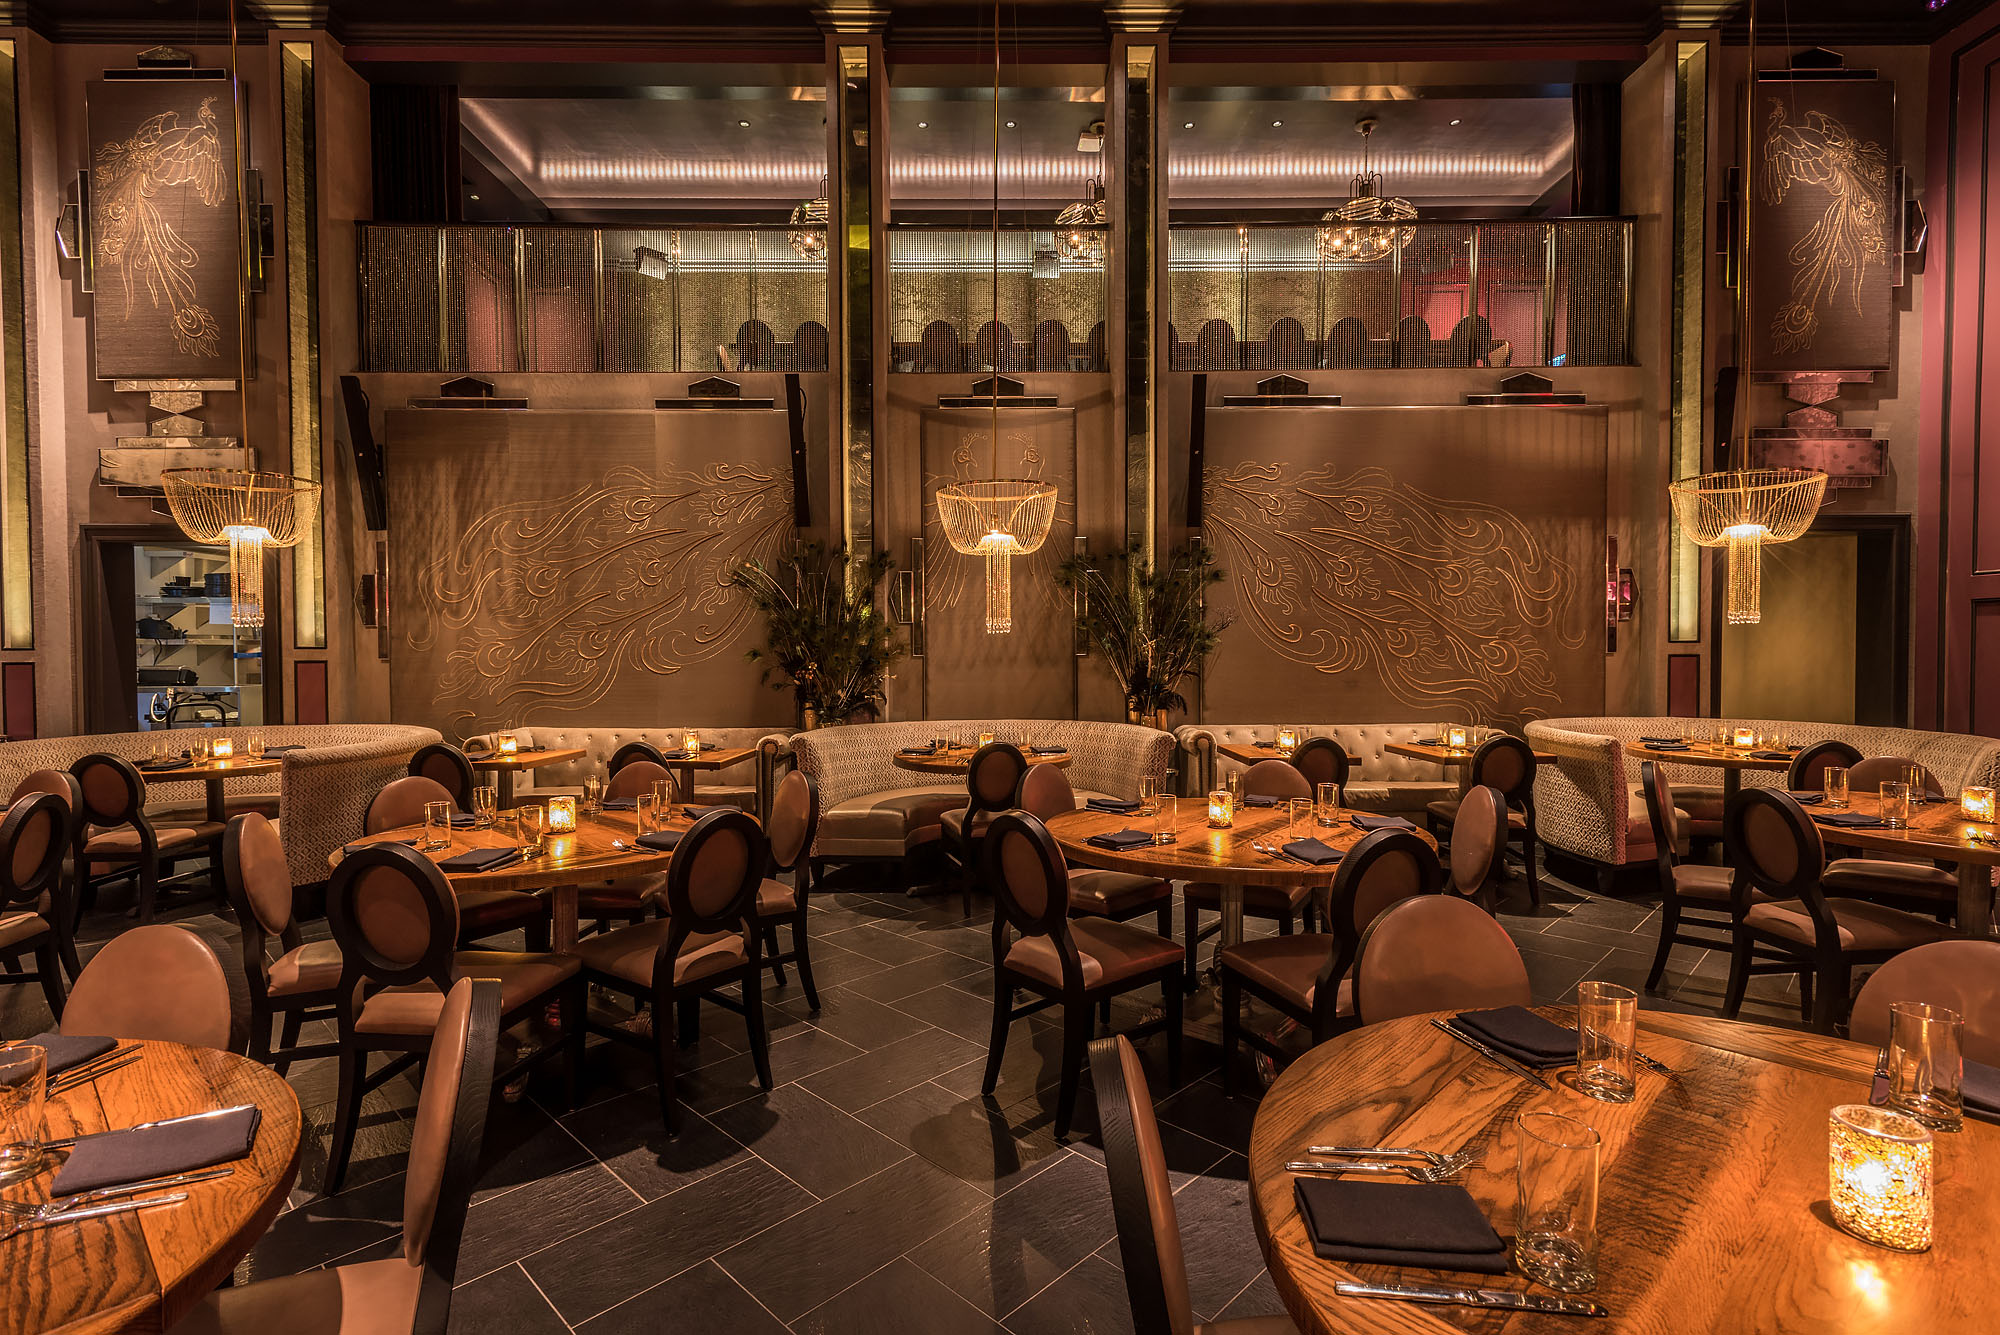 Inside Beauty & Essex, Hollywood's Glitzy New Dining ...